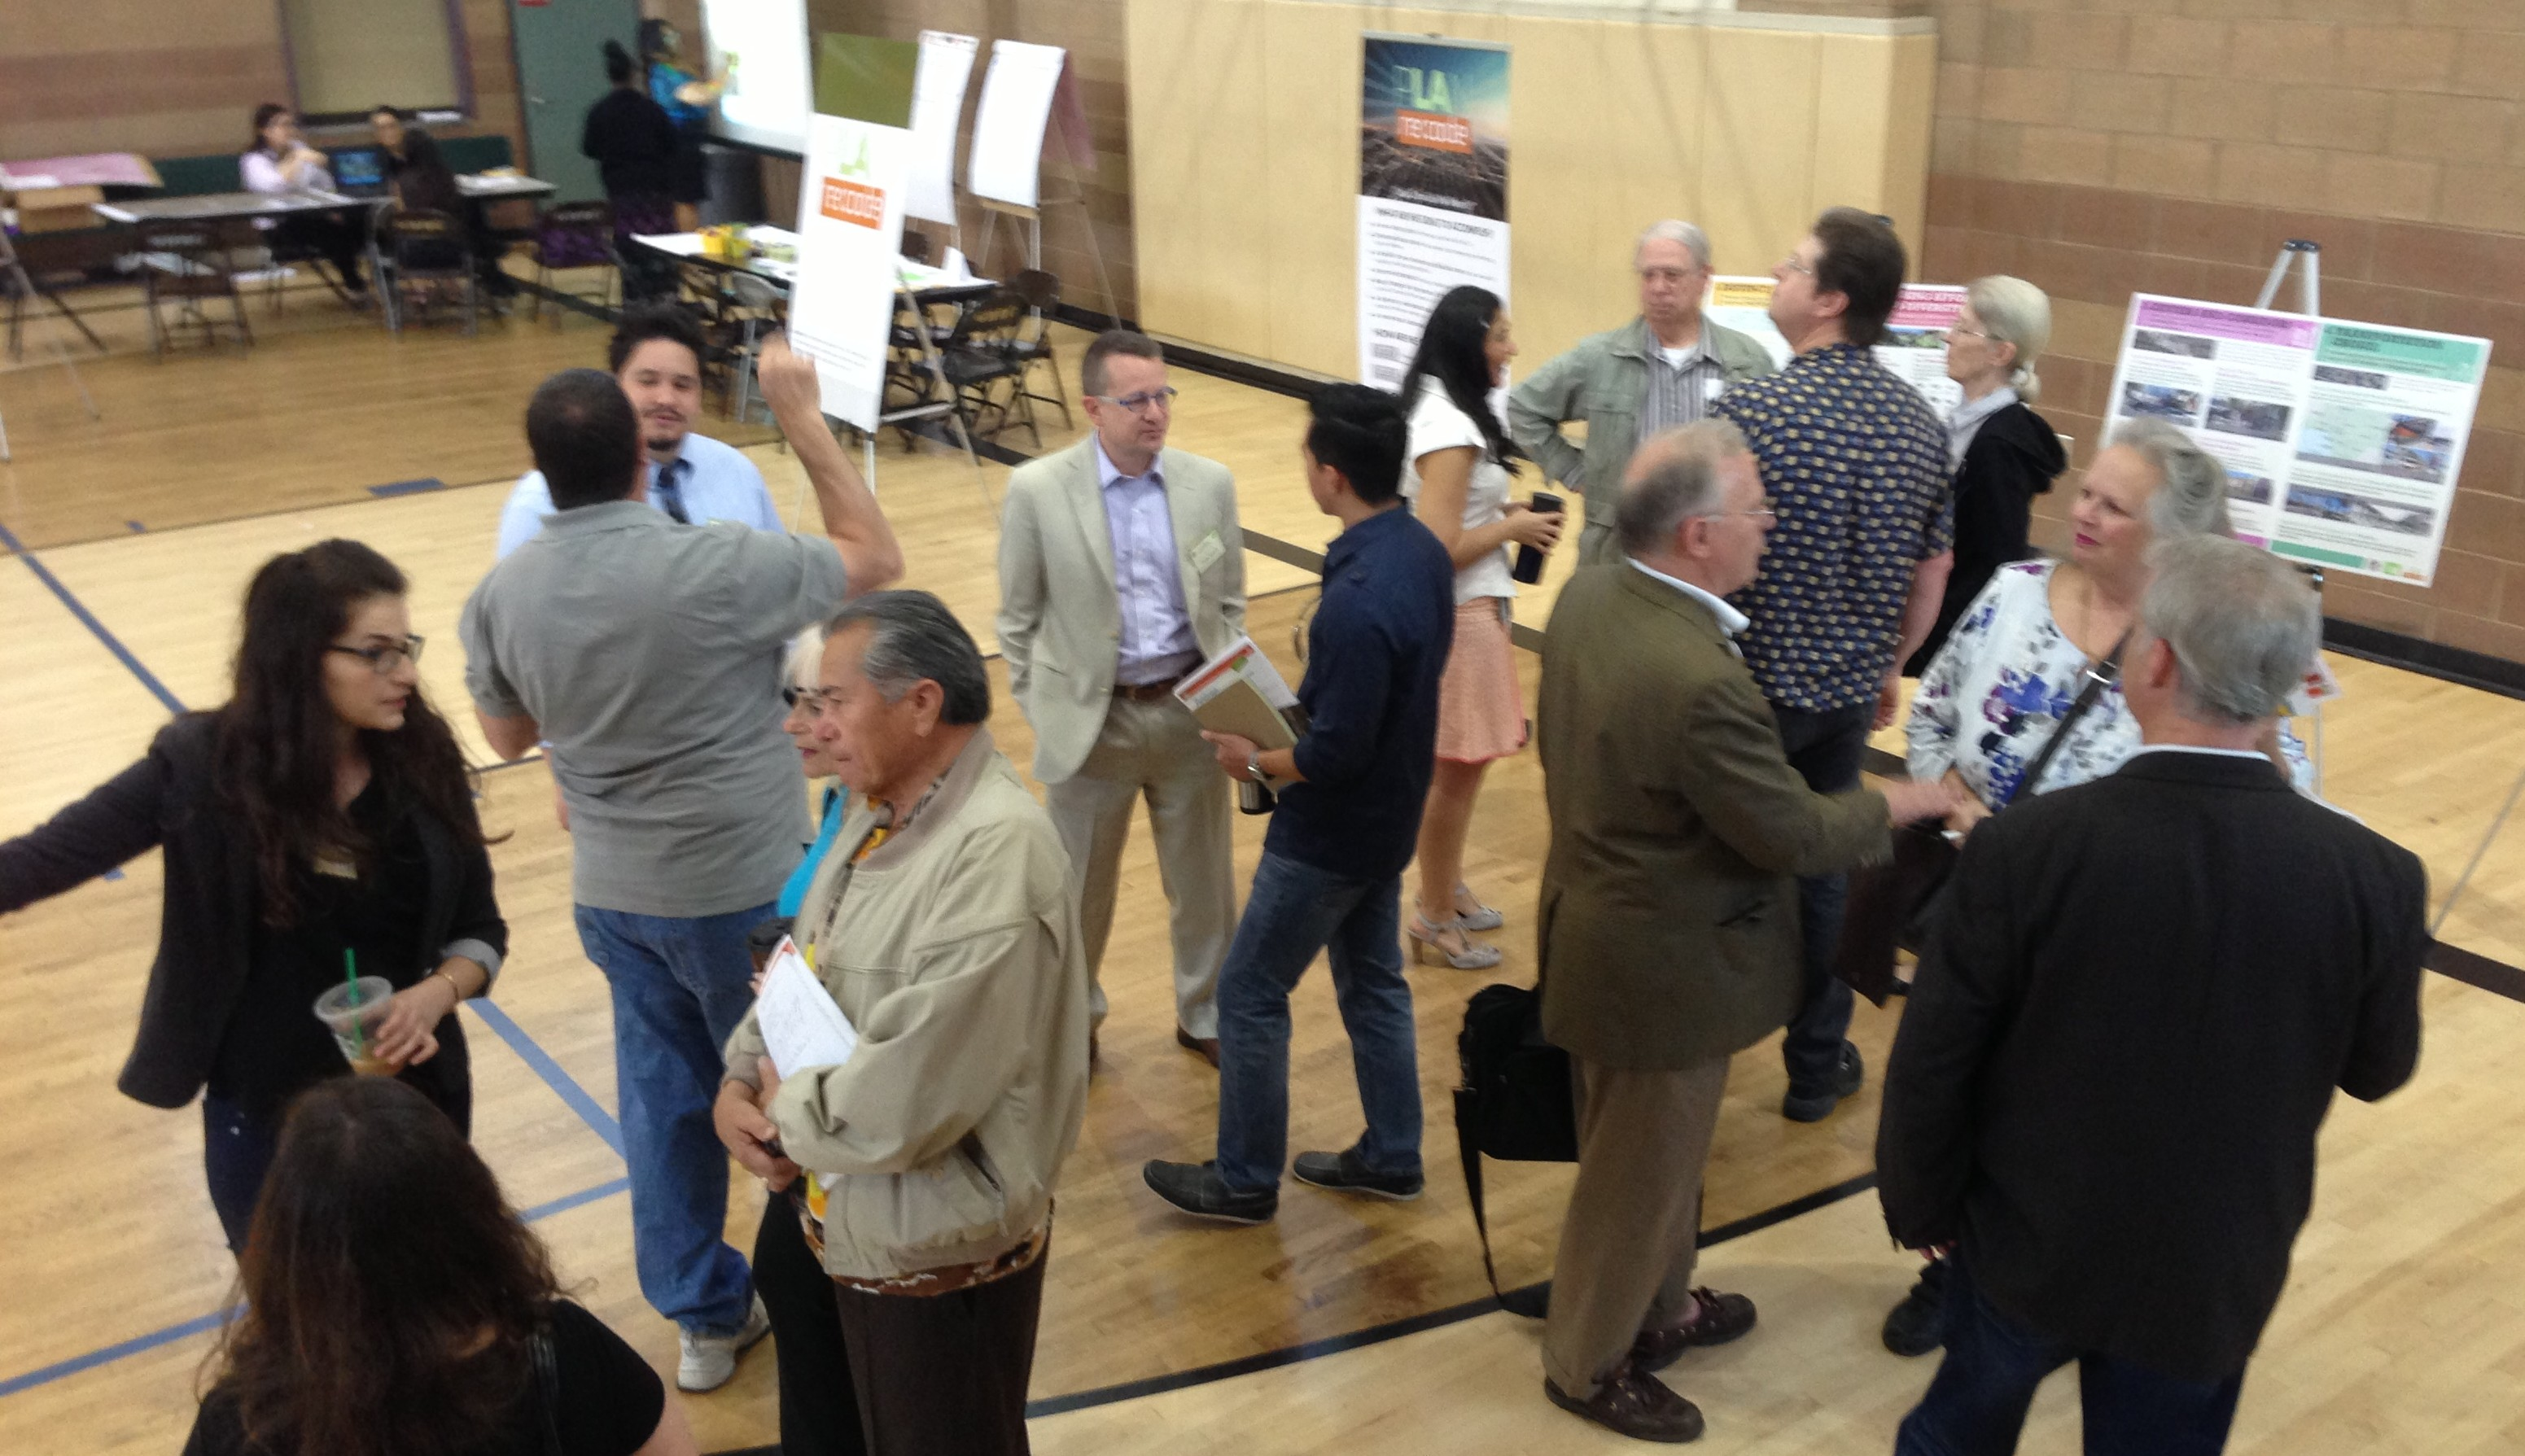 North Valley constituents express their opinions about the proposed plans. Which forum will you attend?